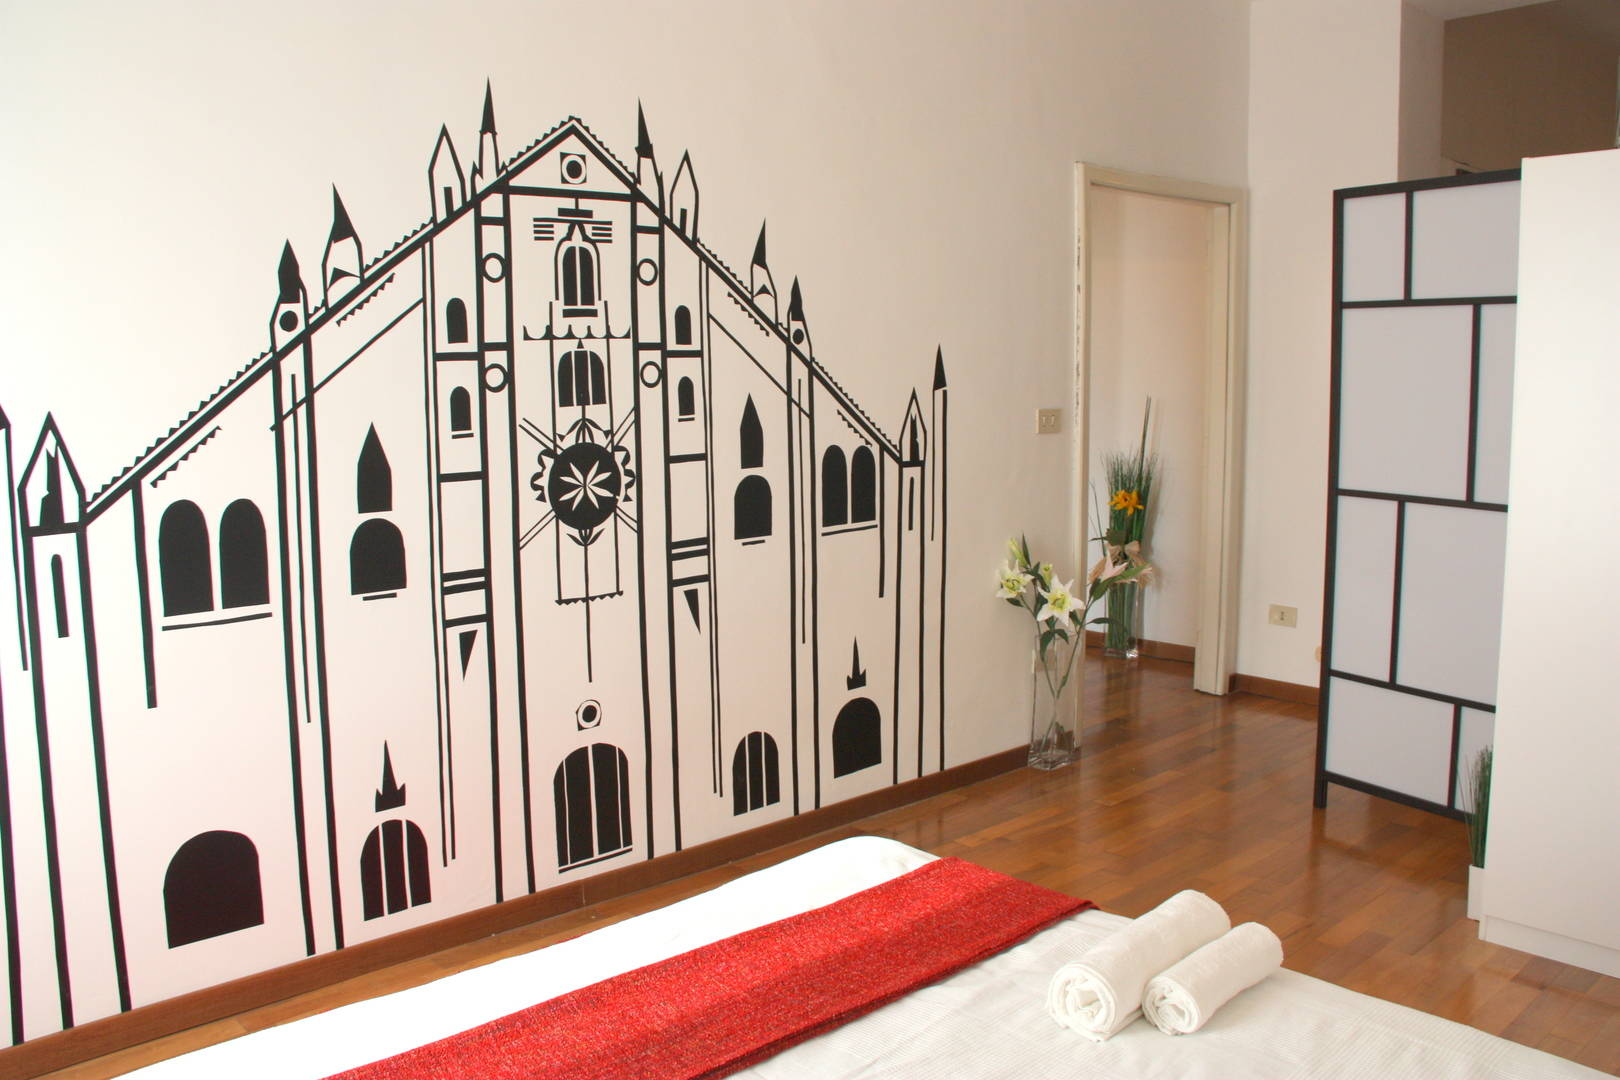 Home decoration. Hand made wall stickers.